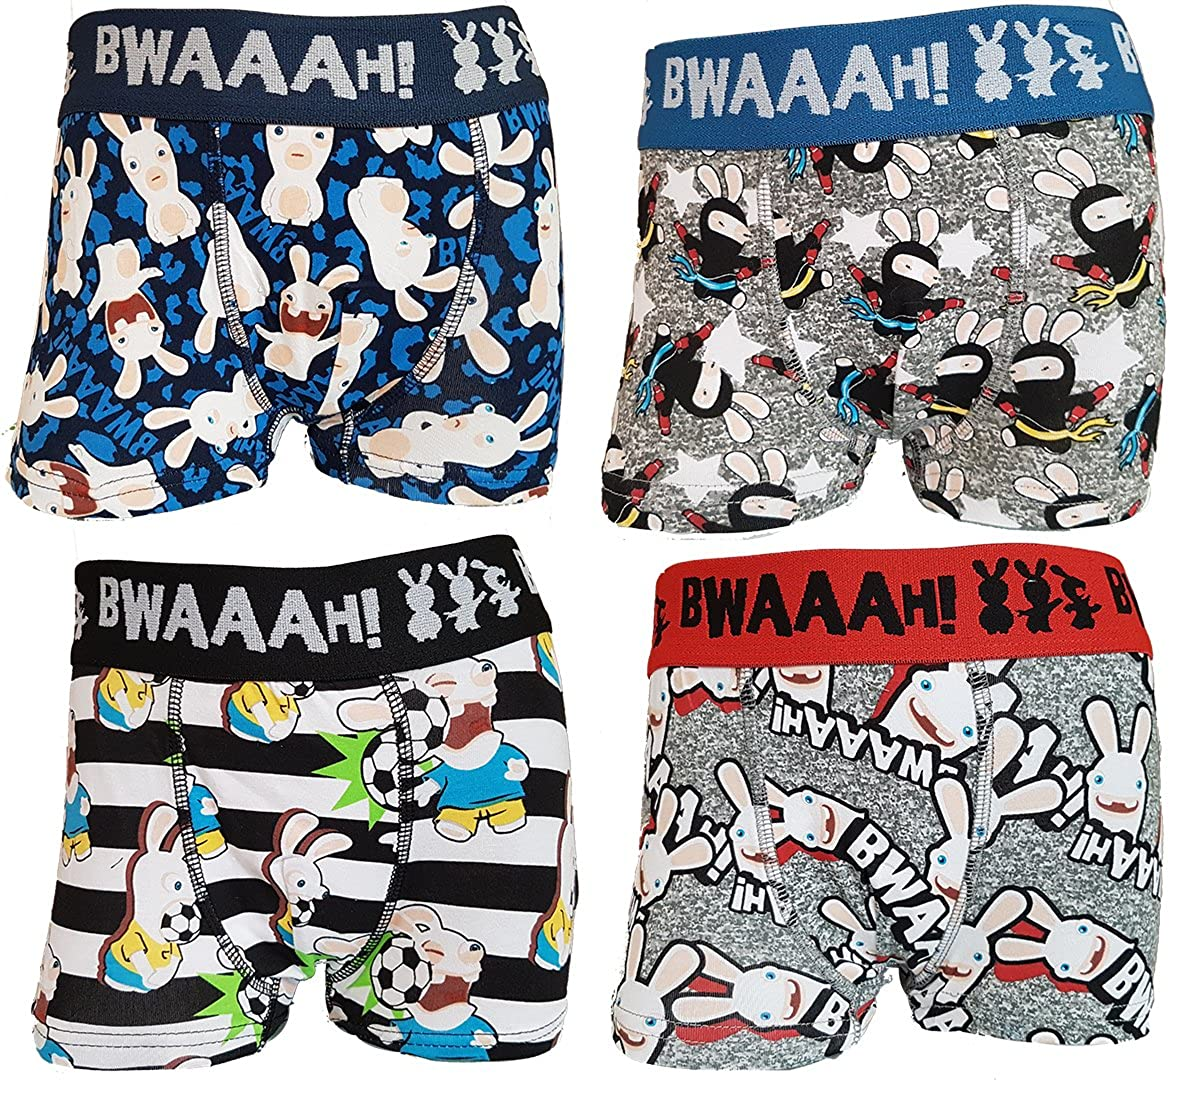 Disney. Boxer License for Boys in Cotton, Star Wars- Assortments Models Photos According to Arrivals